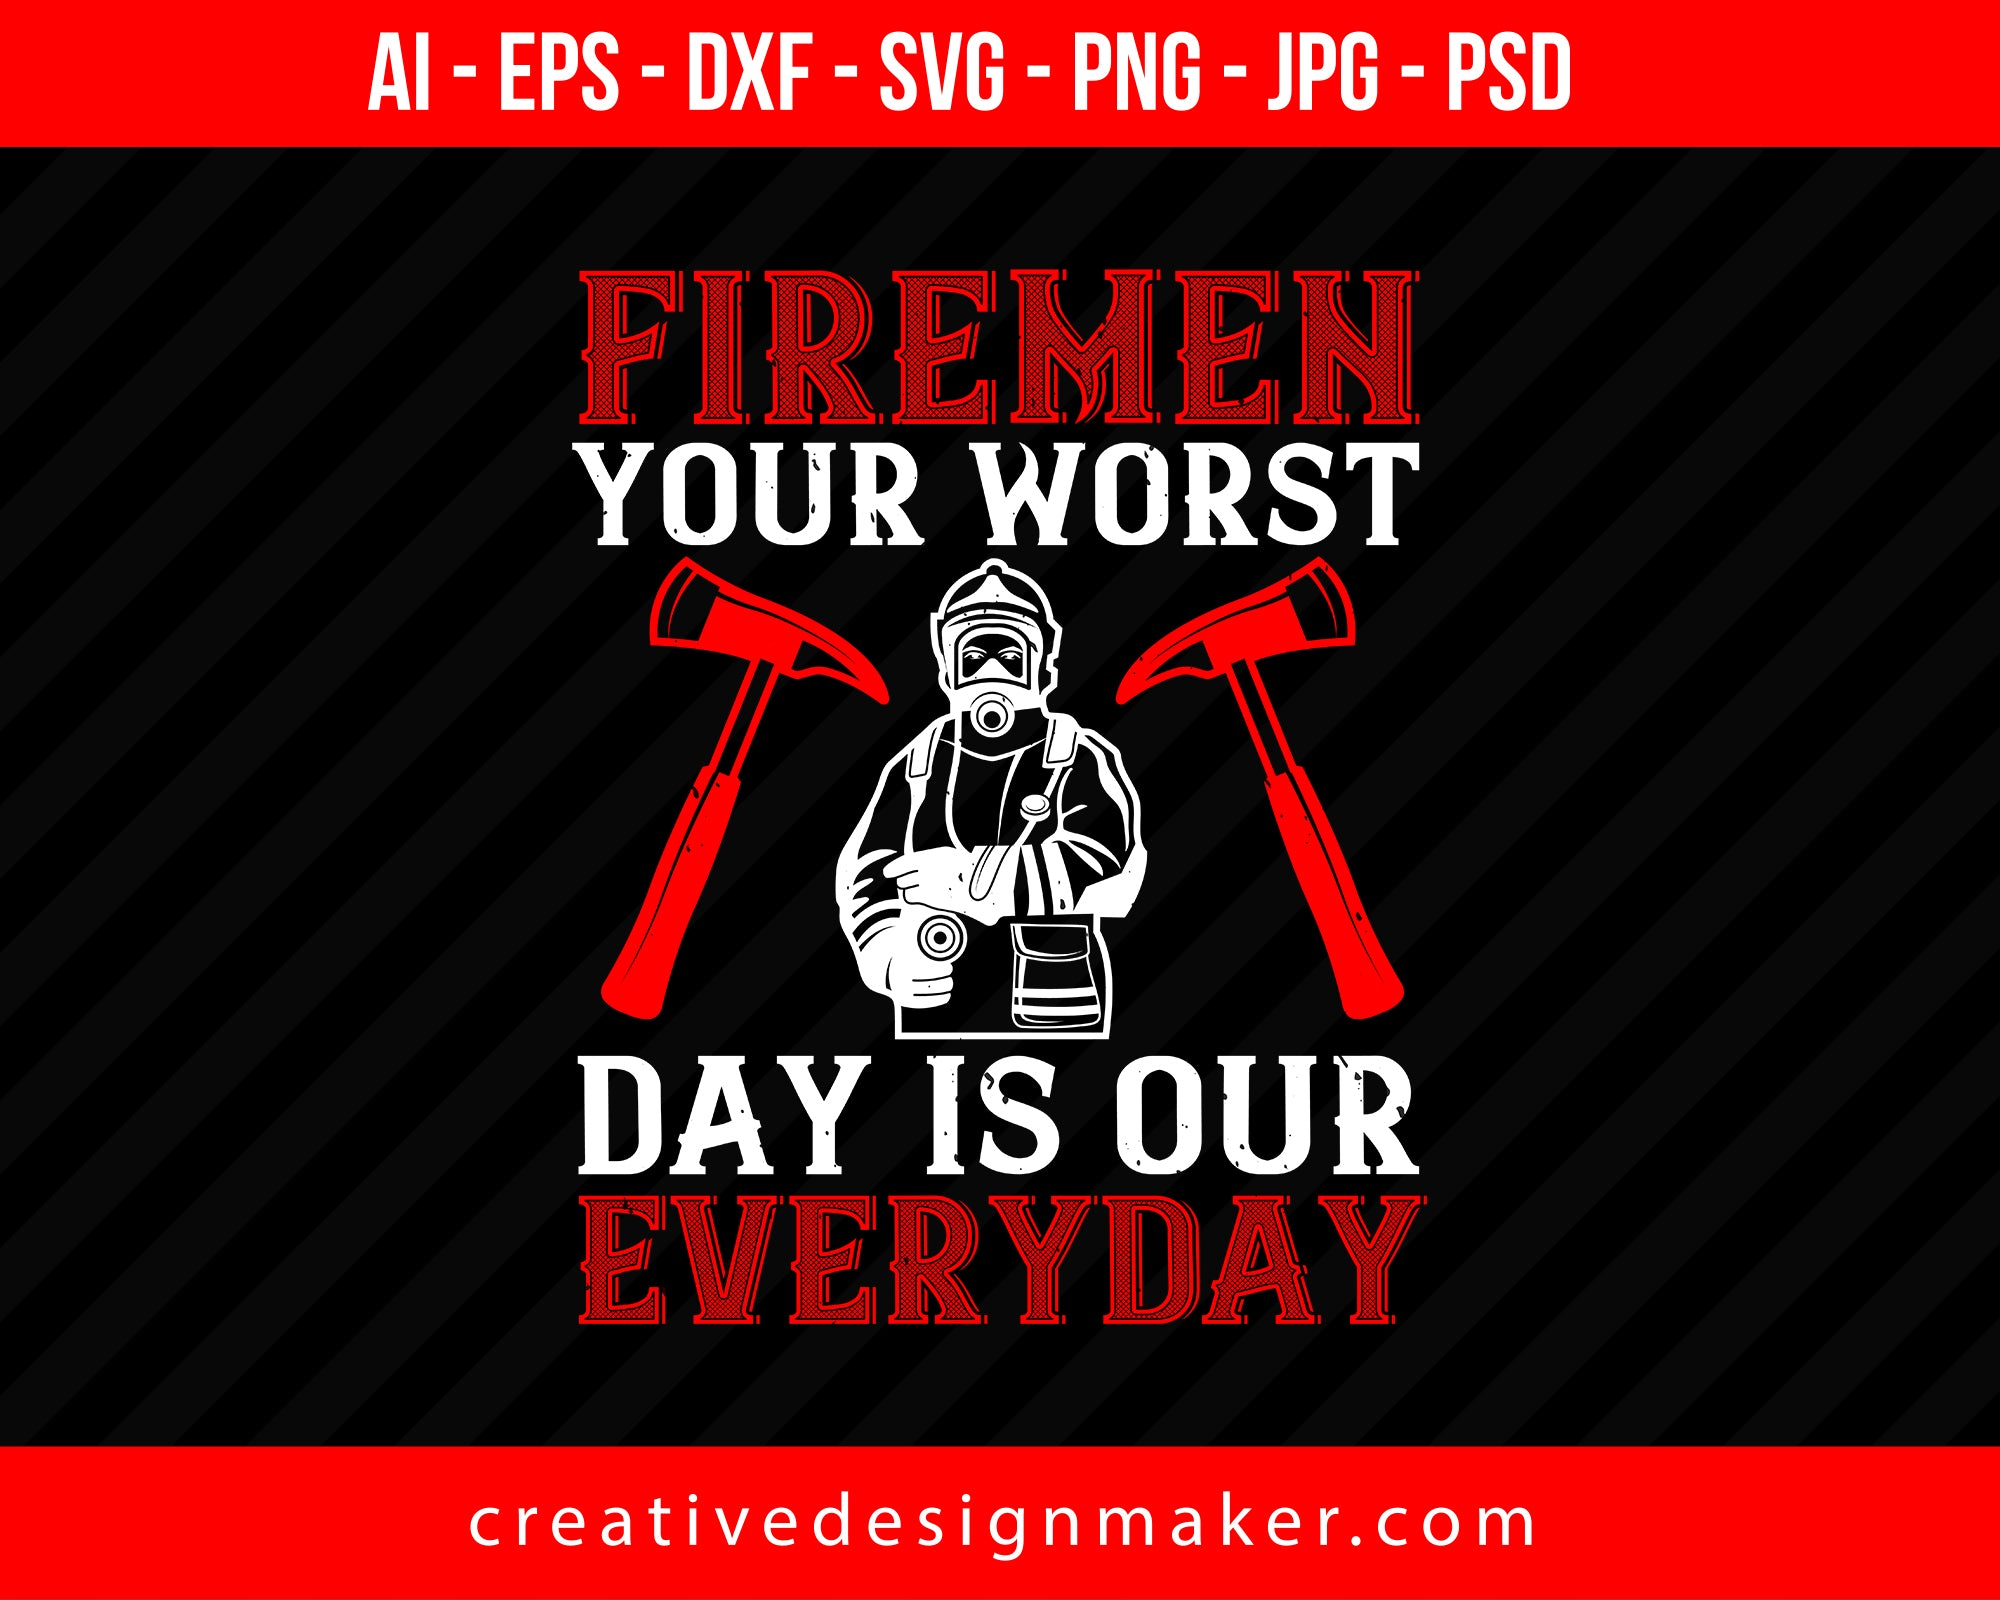 Firemen Your Worst Day Is Our Everyday Firefighter Print Ready Editable T-Shirt SVG Design!